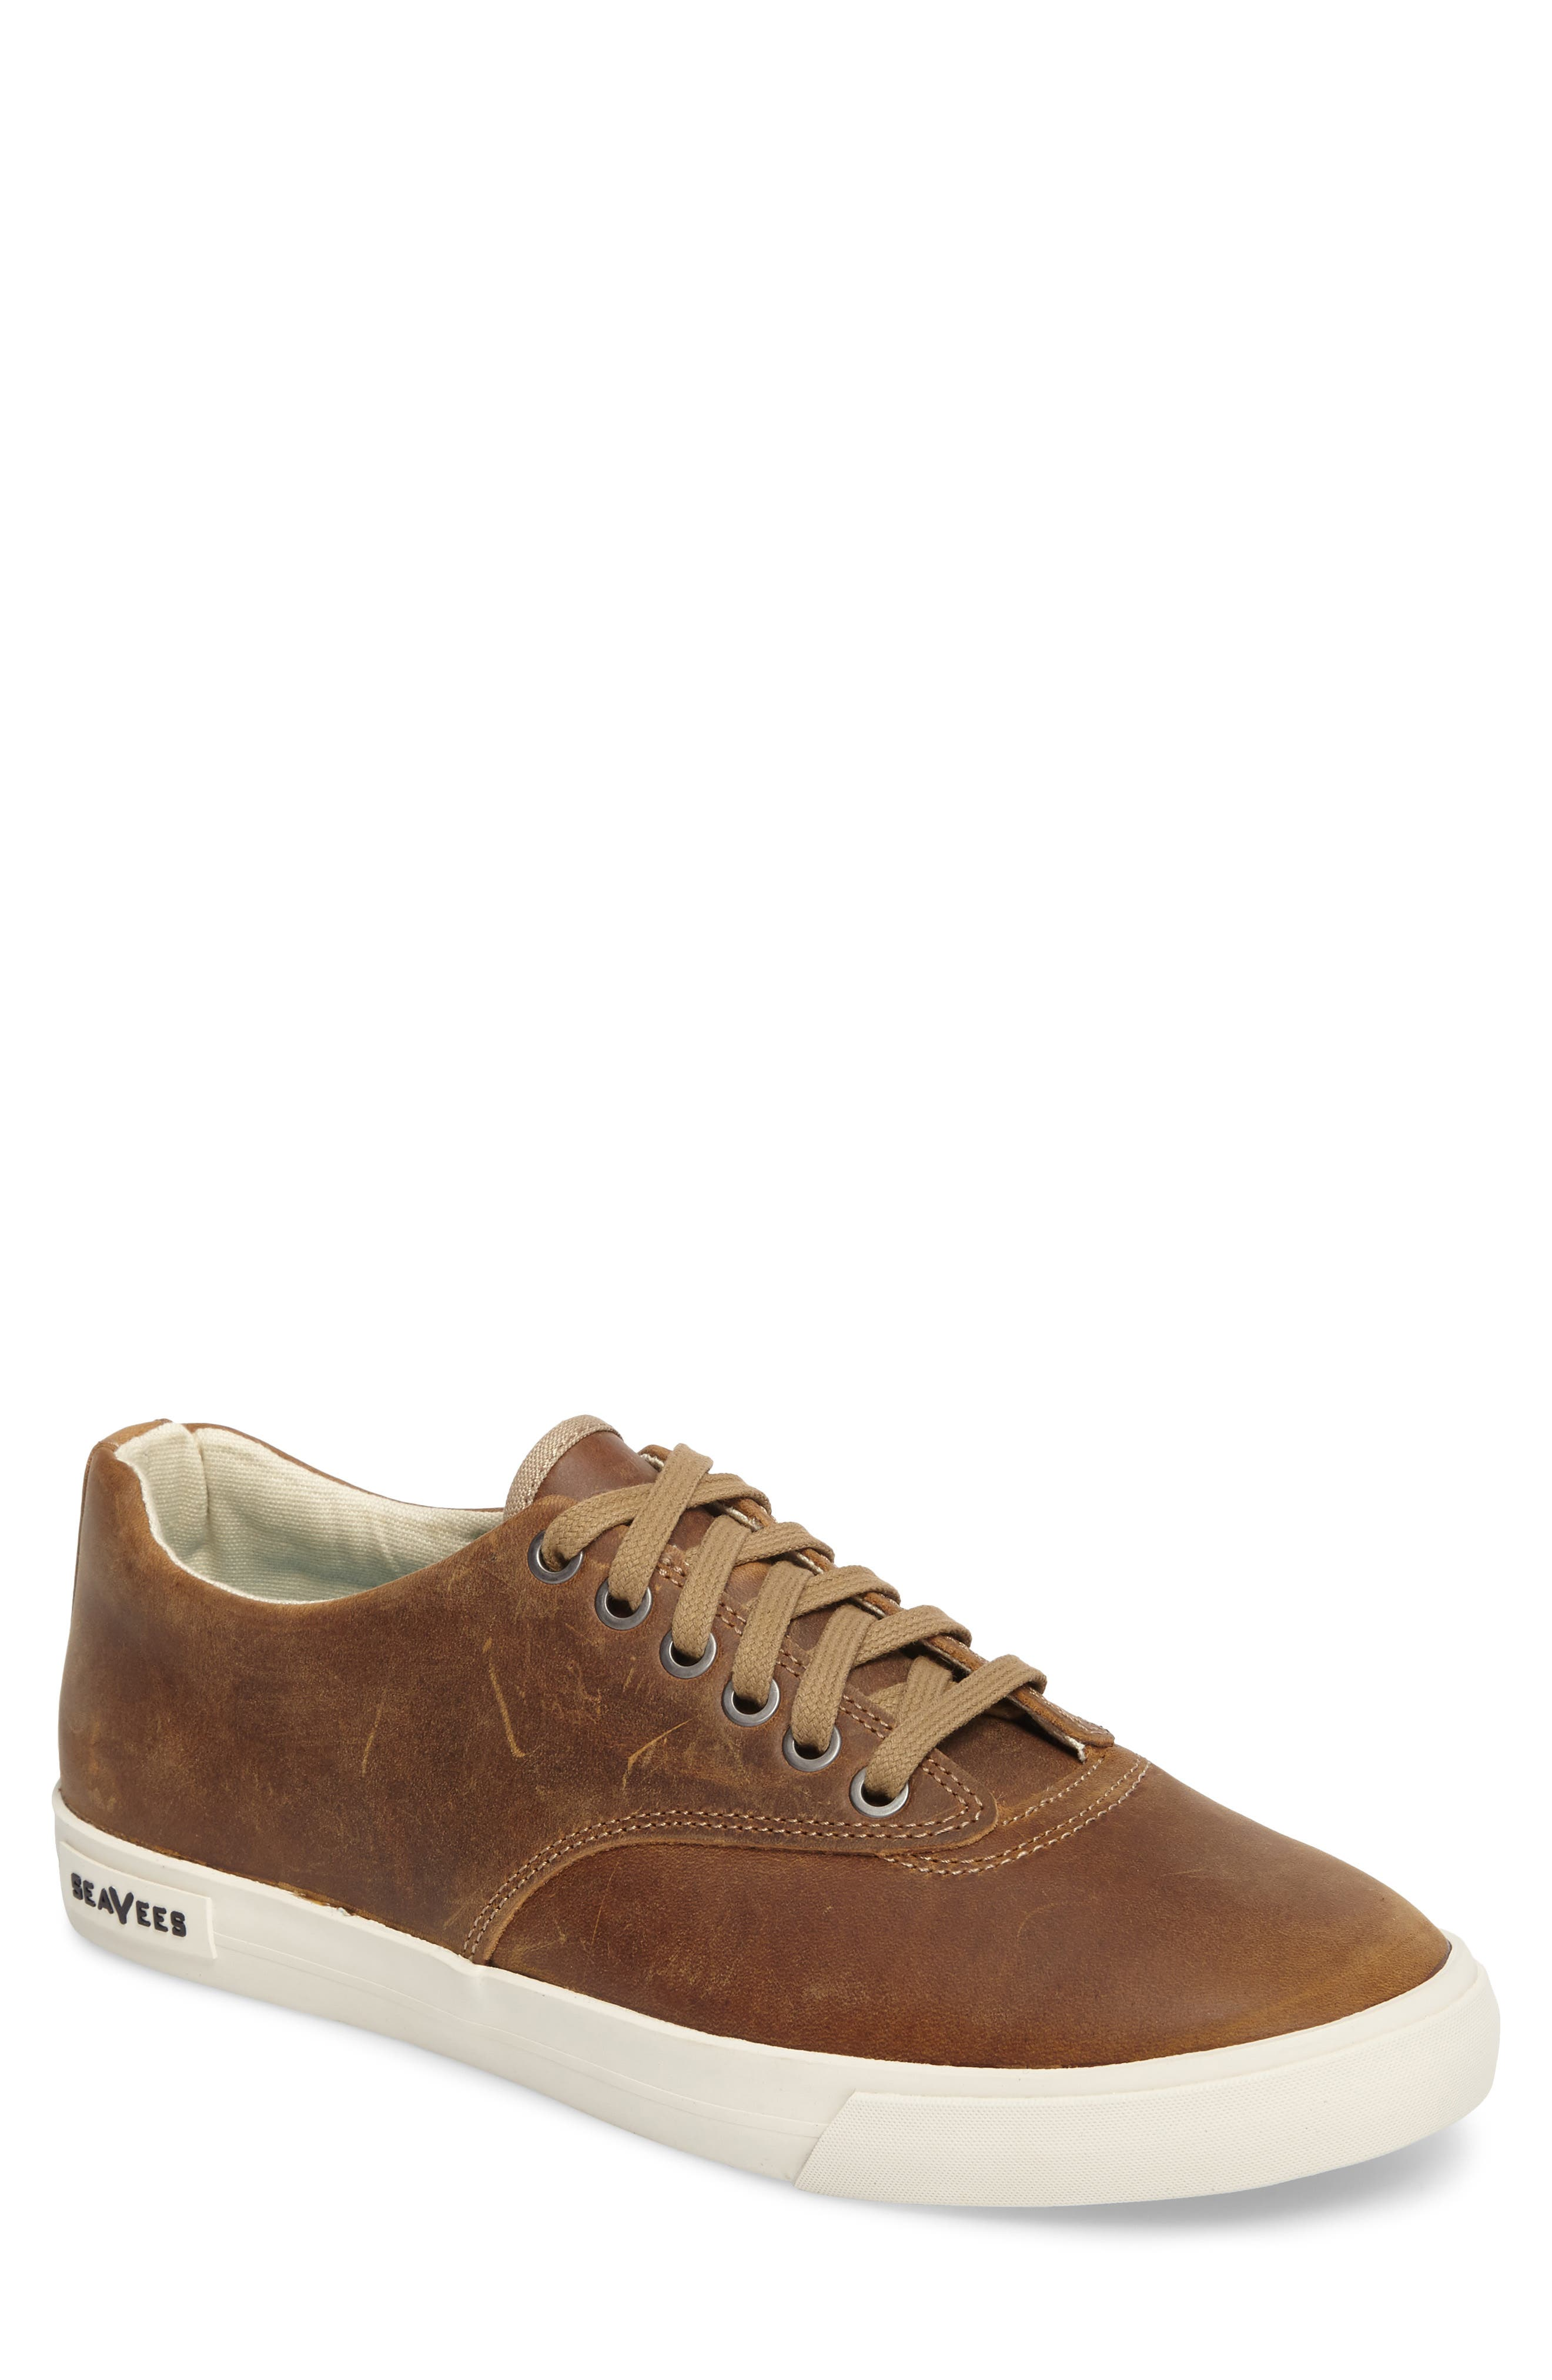 Hermosa Plimsoll Wintertide Sneaker,                             Main thumbnail 1, color,                             240